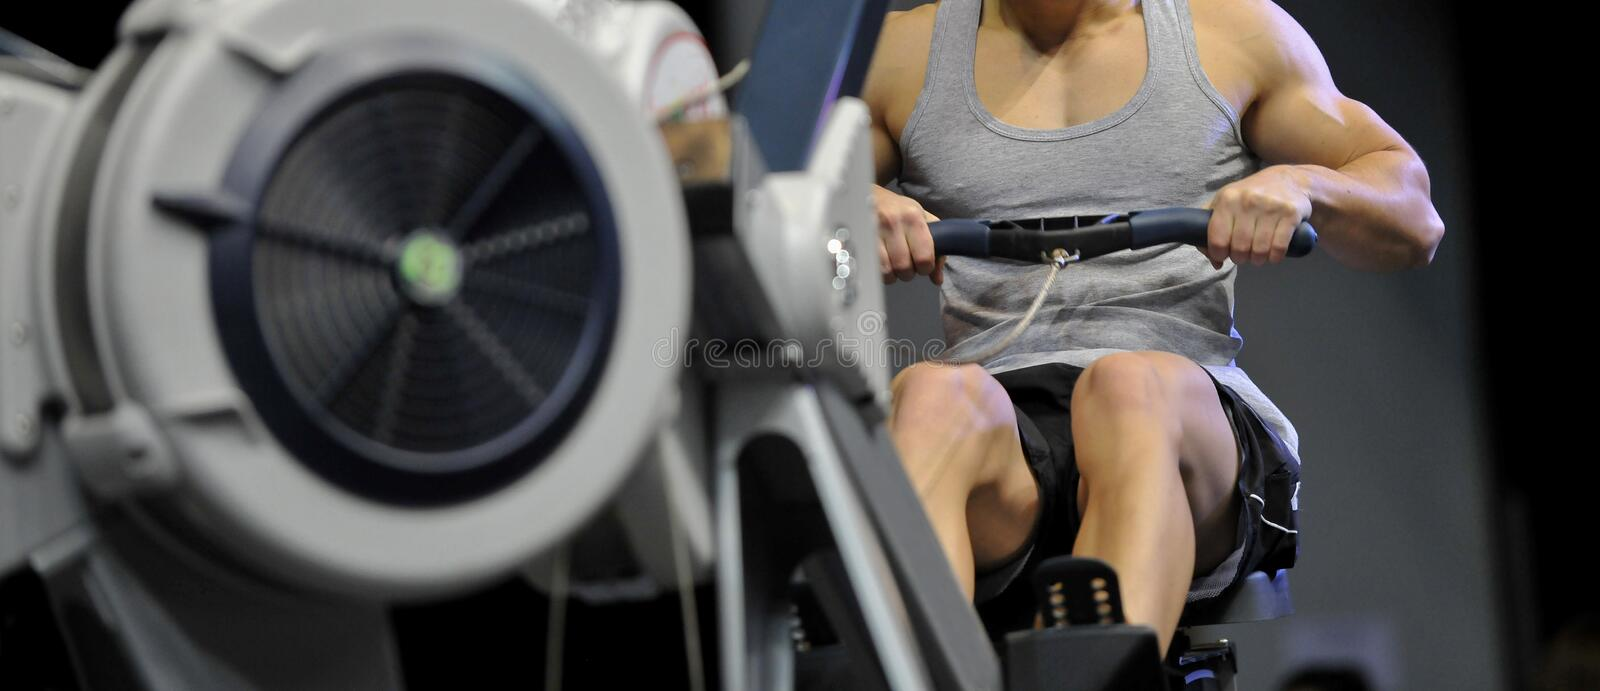 Powerful attractive muscular man CrossFit trainer do workout on indoor rower at the gym.  royalty free stock photo